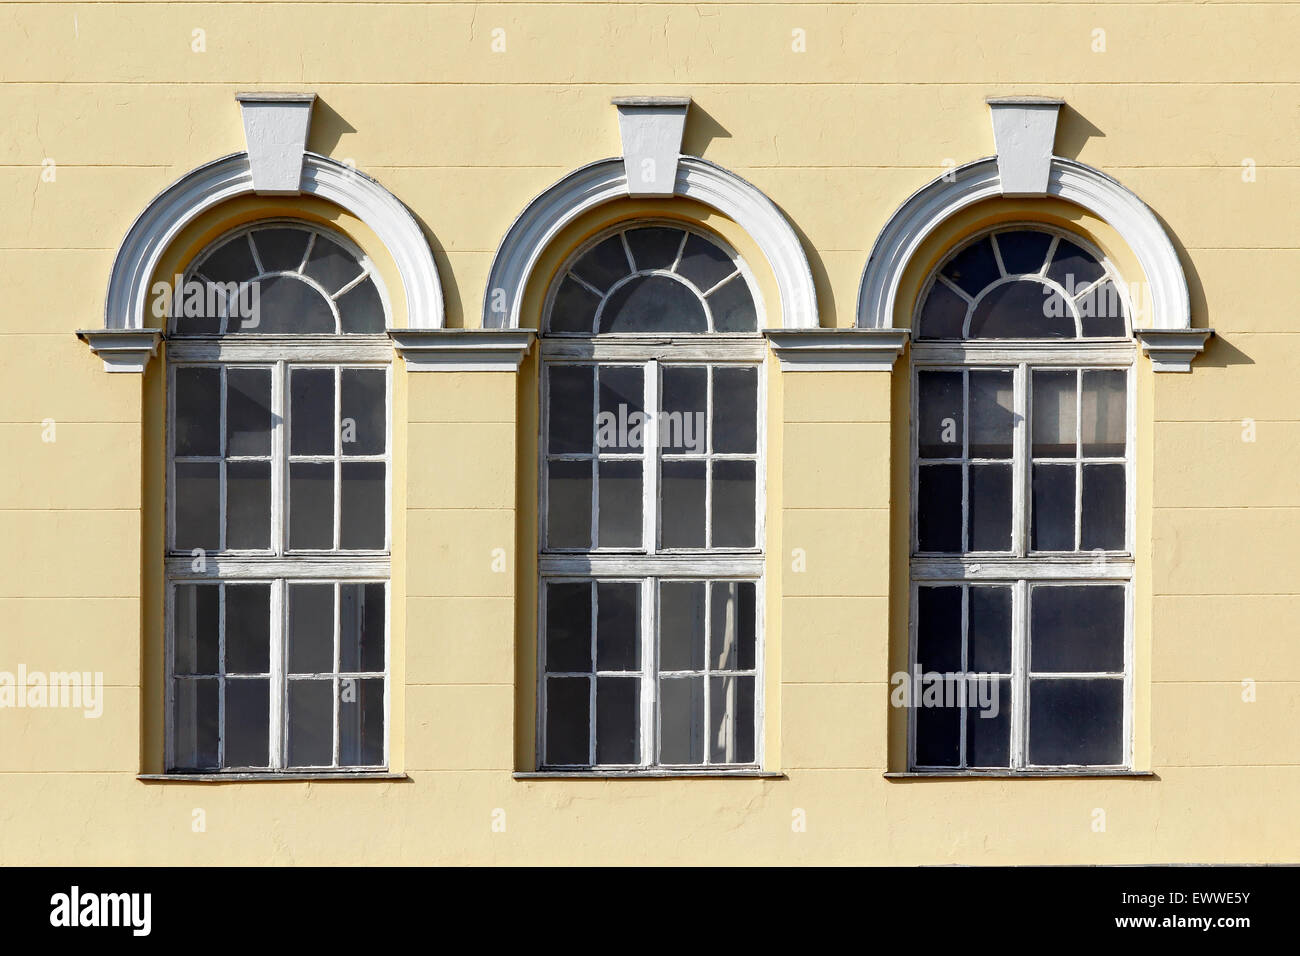 Nice Arched Window Wall Decor Pictures Inspiration - The Wall Art ...